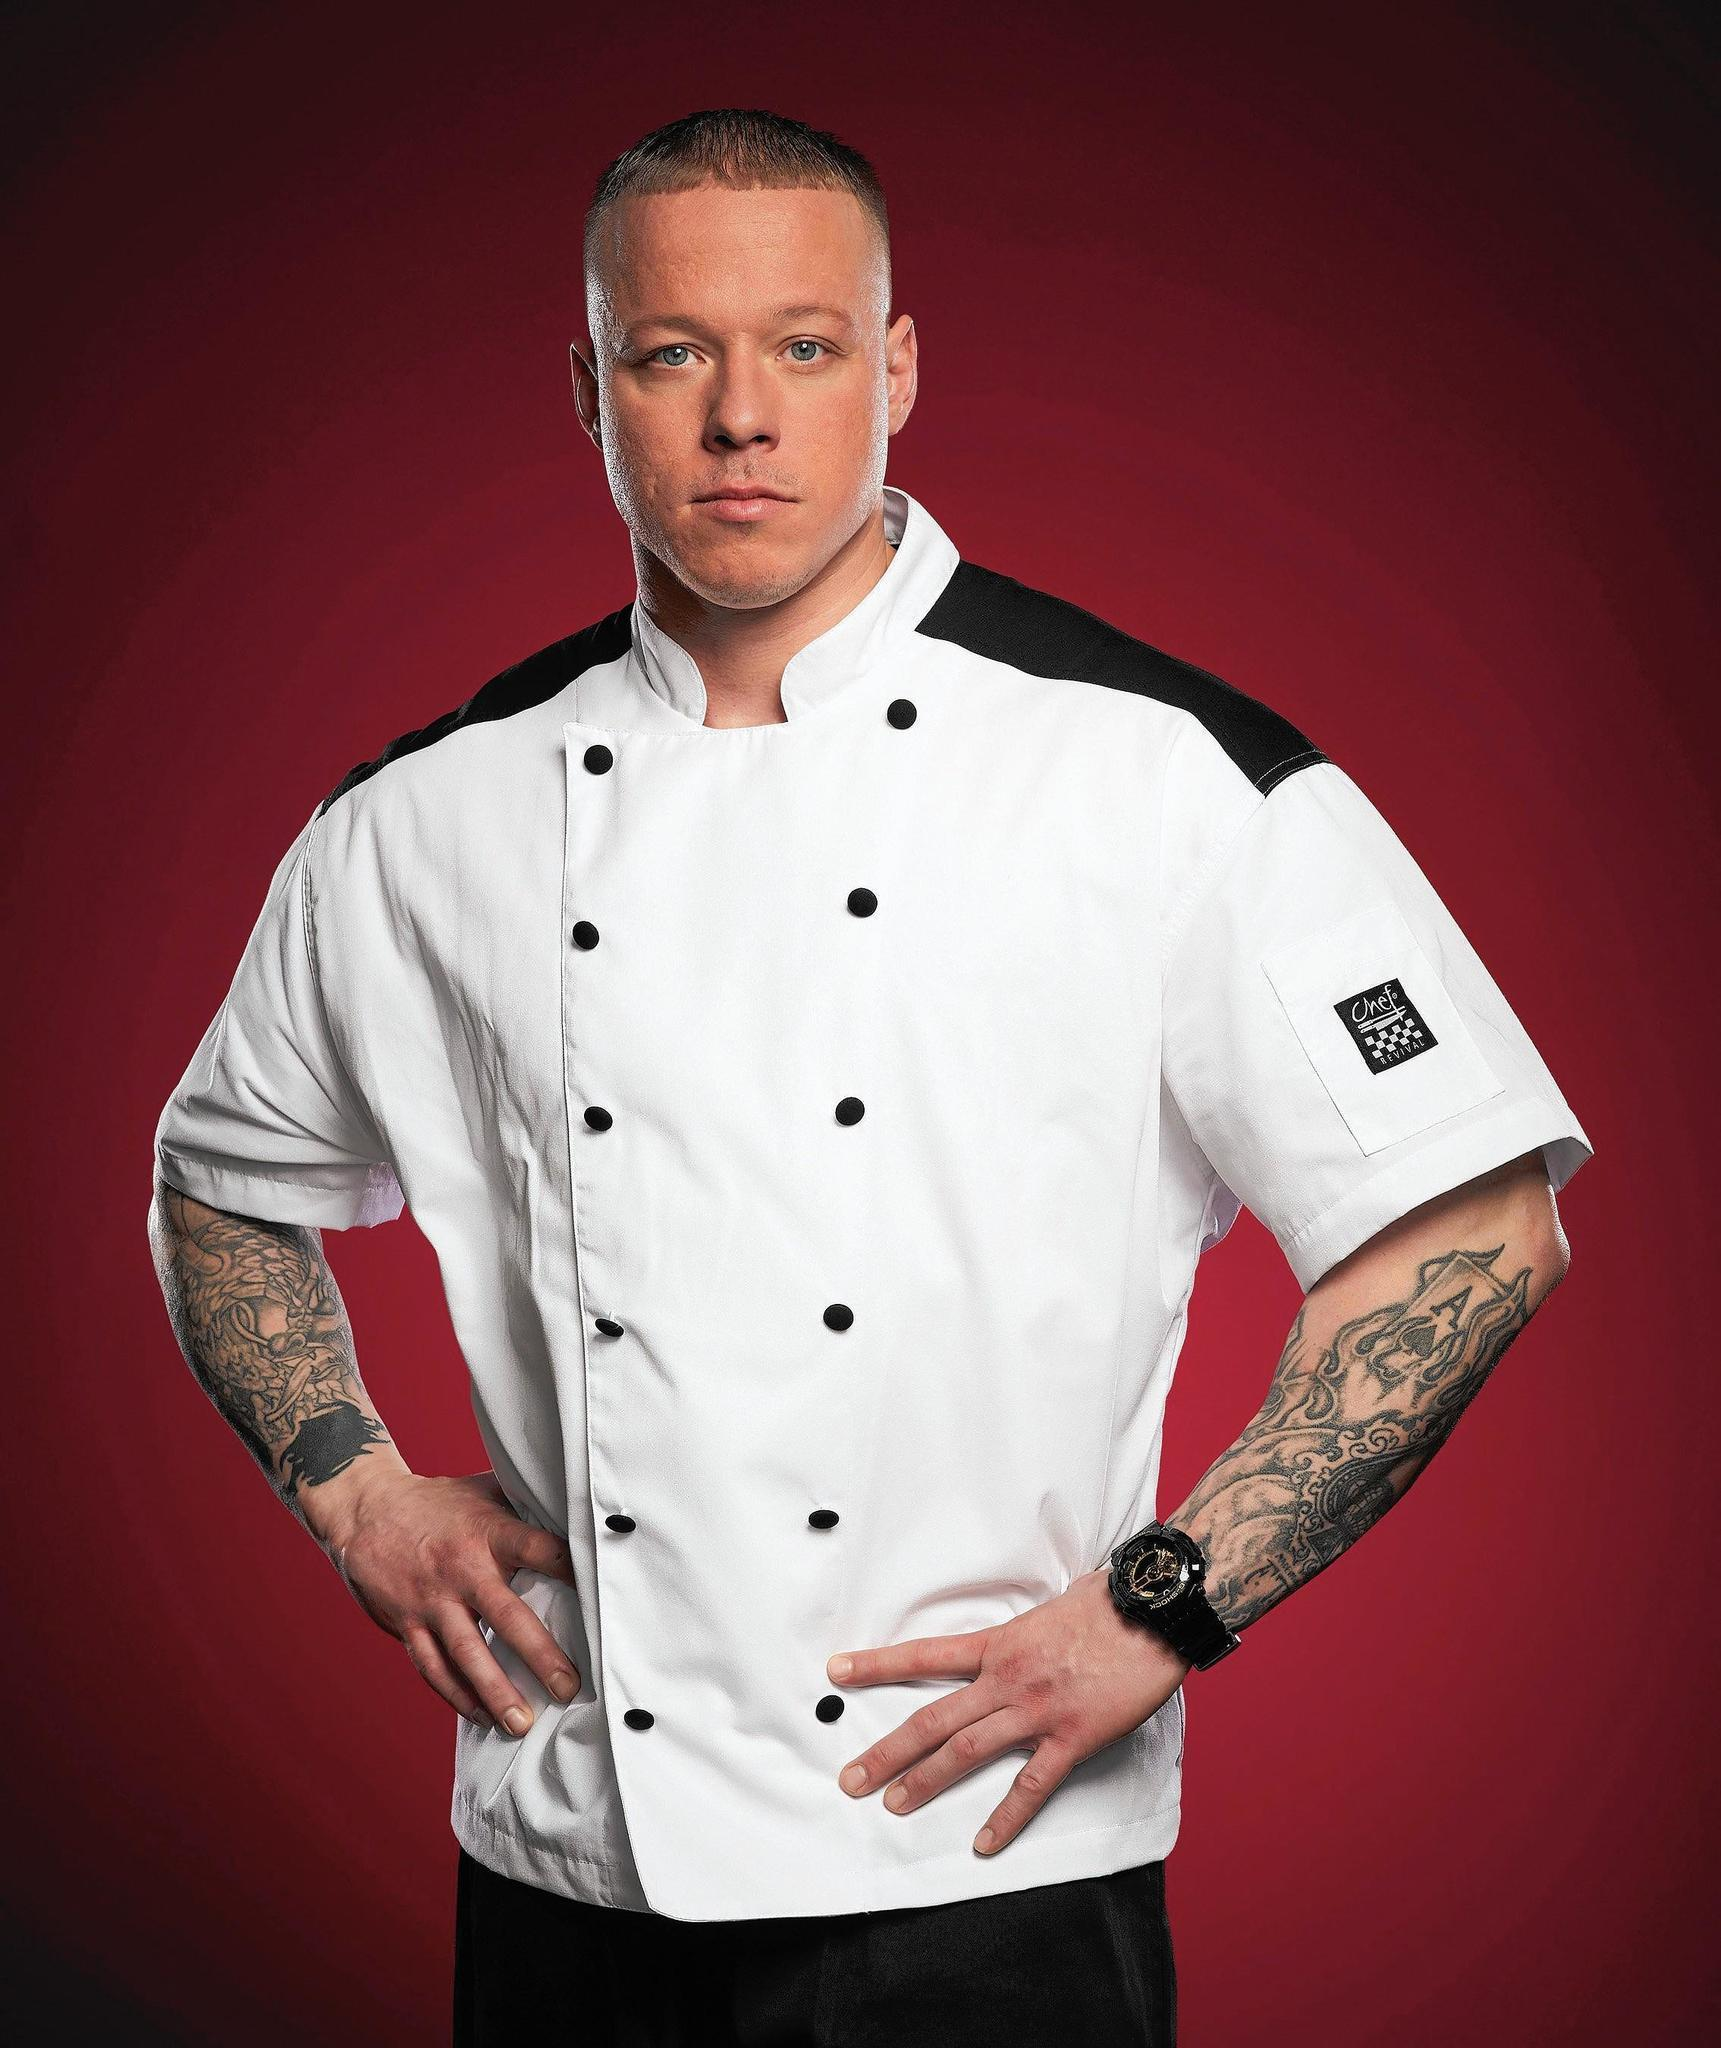 Hells Kitchen Season 6: CT Chef Van Hurd Talks About BBQ And His All-Star Return